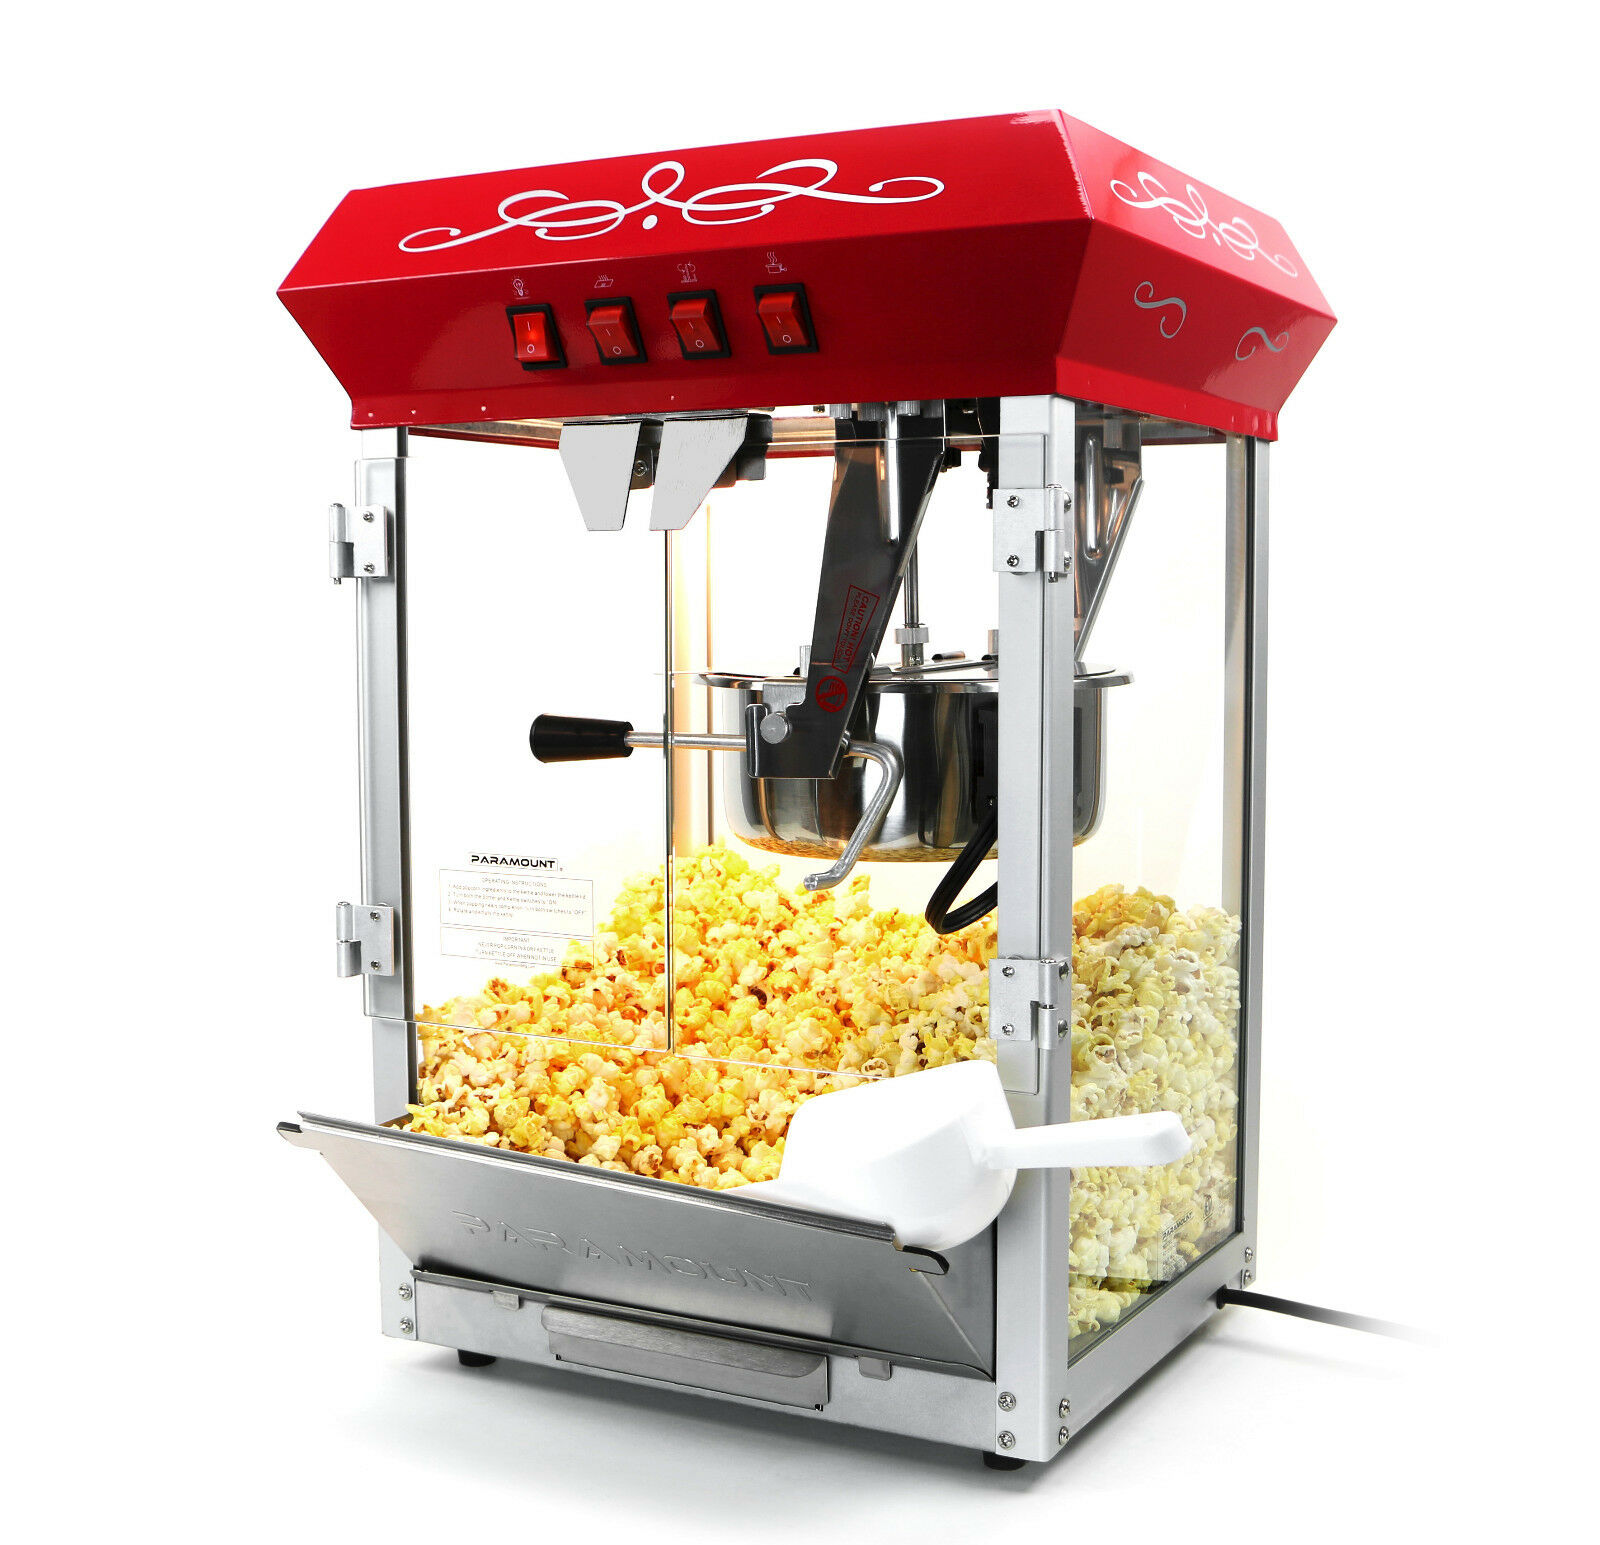 paramount 8oz popcorn maker machine new upgraded 8 oz hot oil popper red ebay. Black Bedroom Furniture Sets. Home Design Ideas